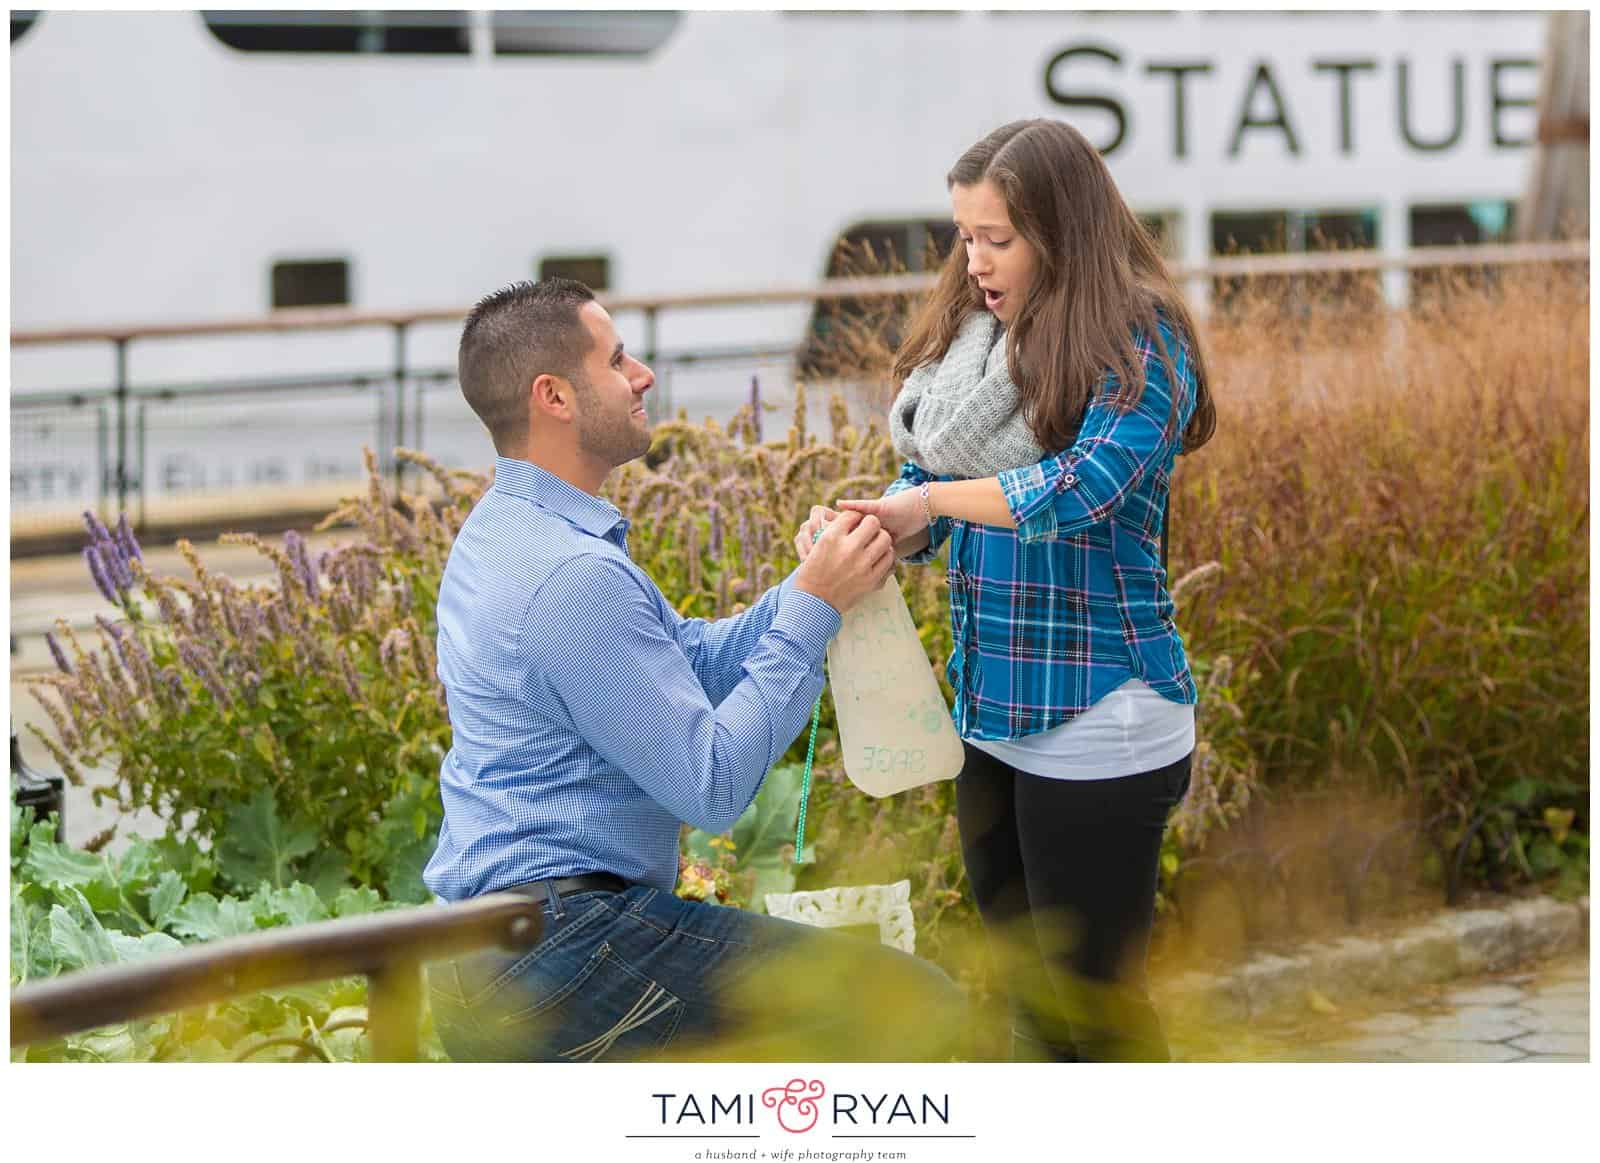 Rocco-Kait-New-York-City-Battery-Park-Proposal-Surprise-0035